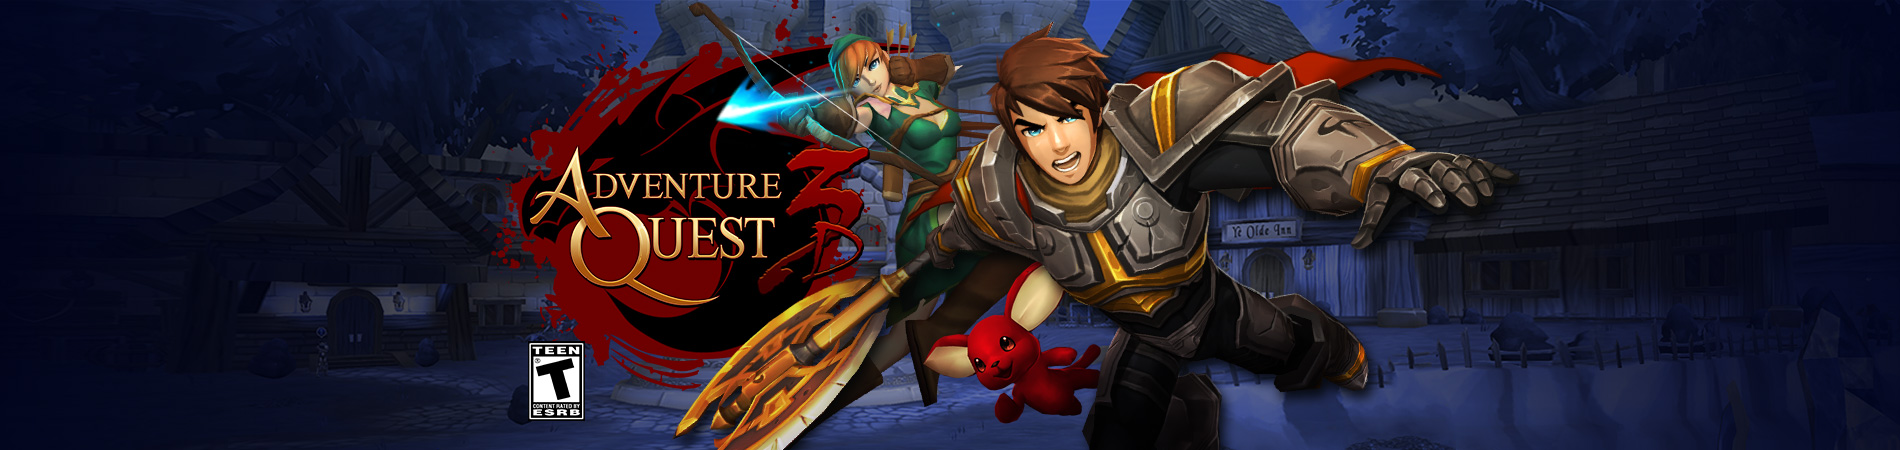 Adventure Quest 3D, Cross-Platform MMORPG - Play on Android